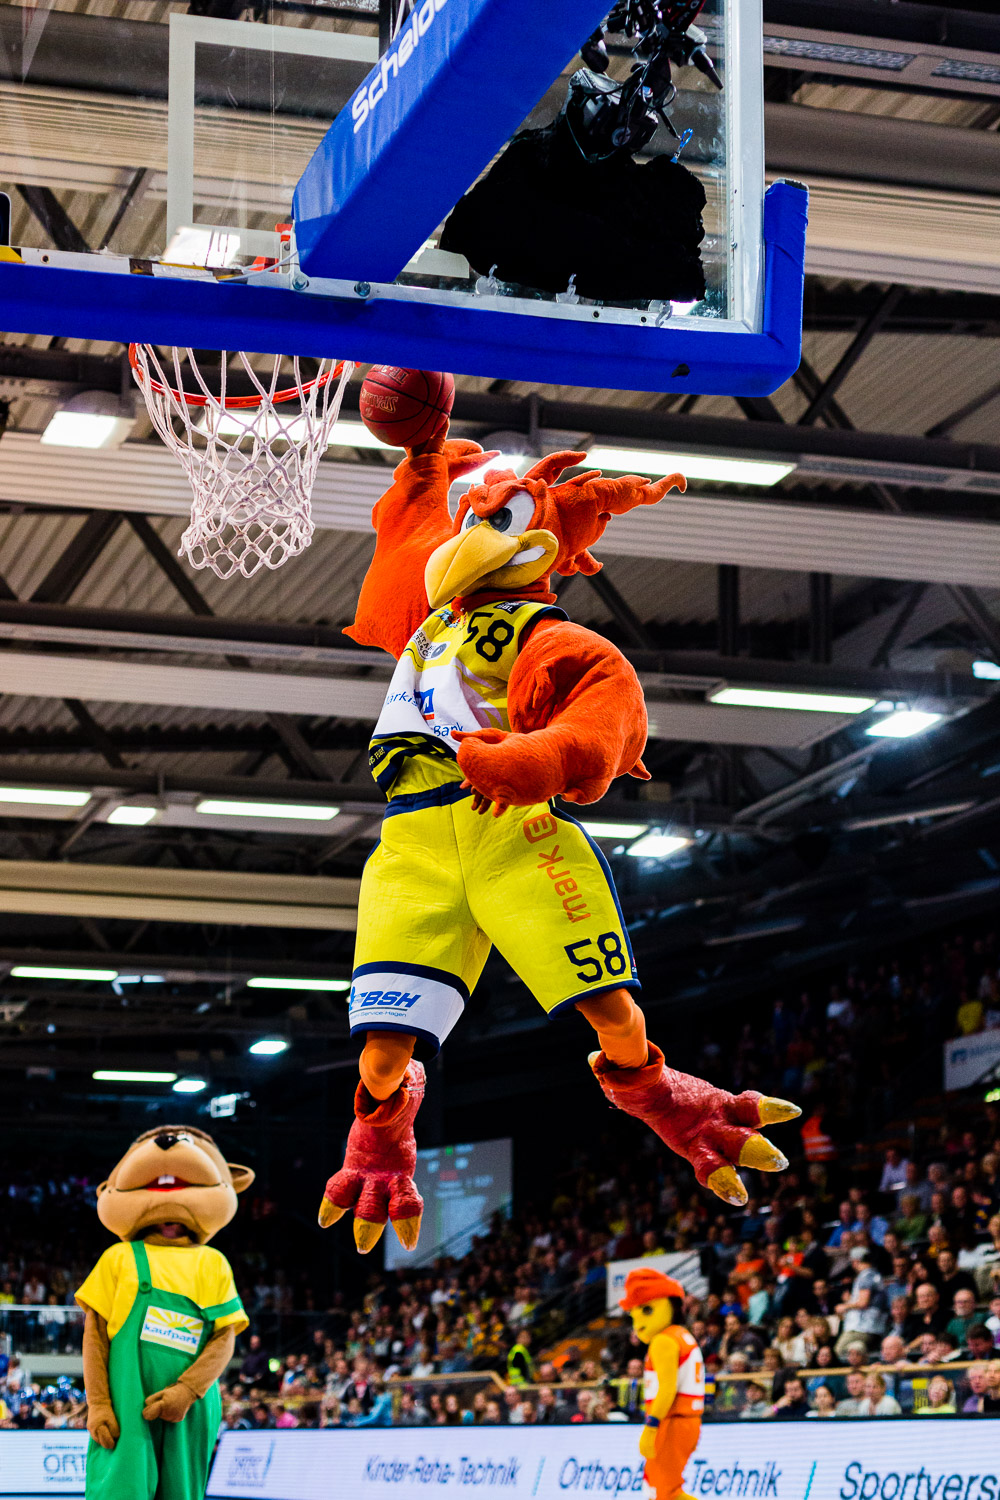 Phoenix Hagen vs. Telekom Baskets Bonn - 16.04.2015, Enervie Are